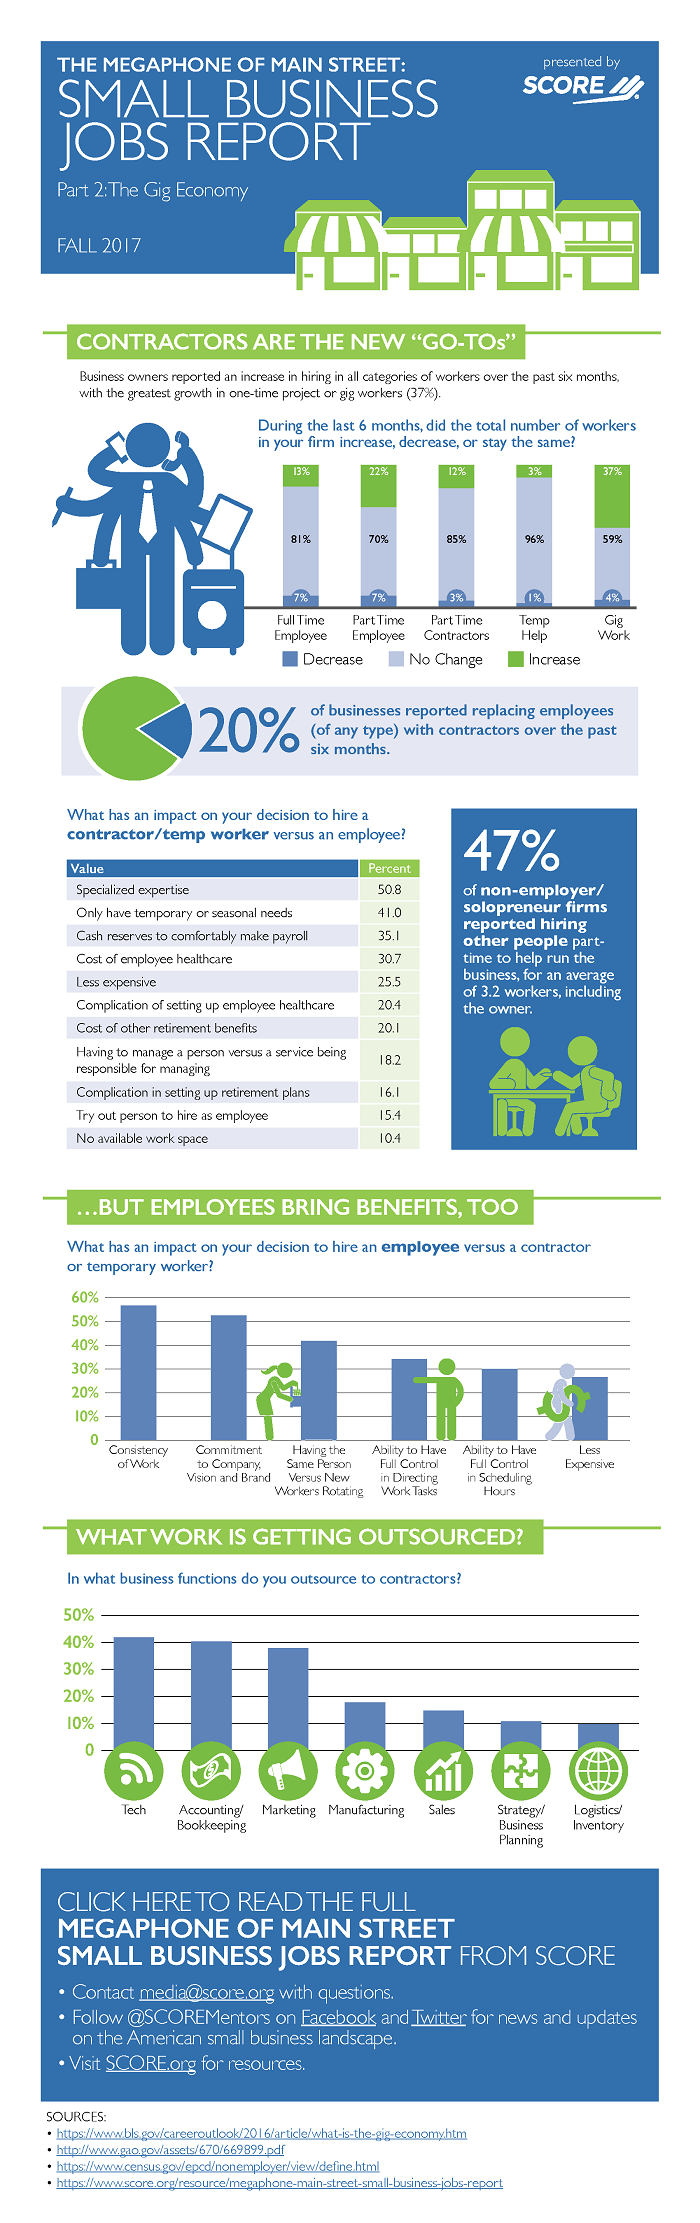 The Megaphone of Main Street Jobs Report, Infographic #2: The Gig Economy